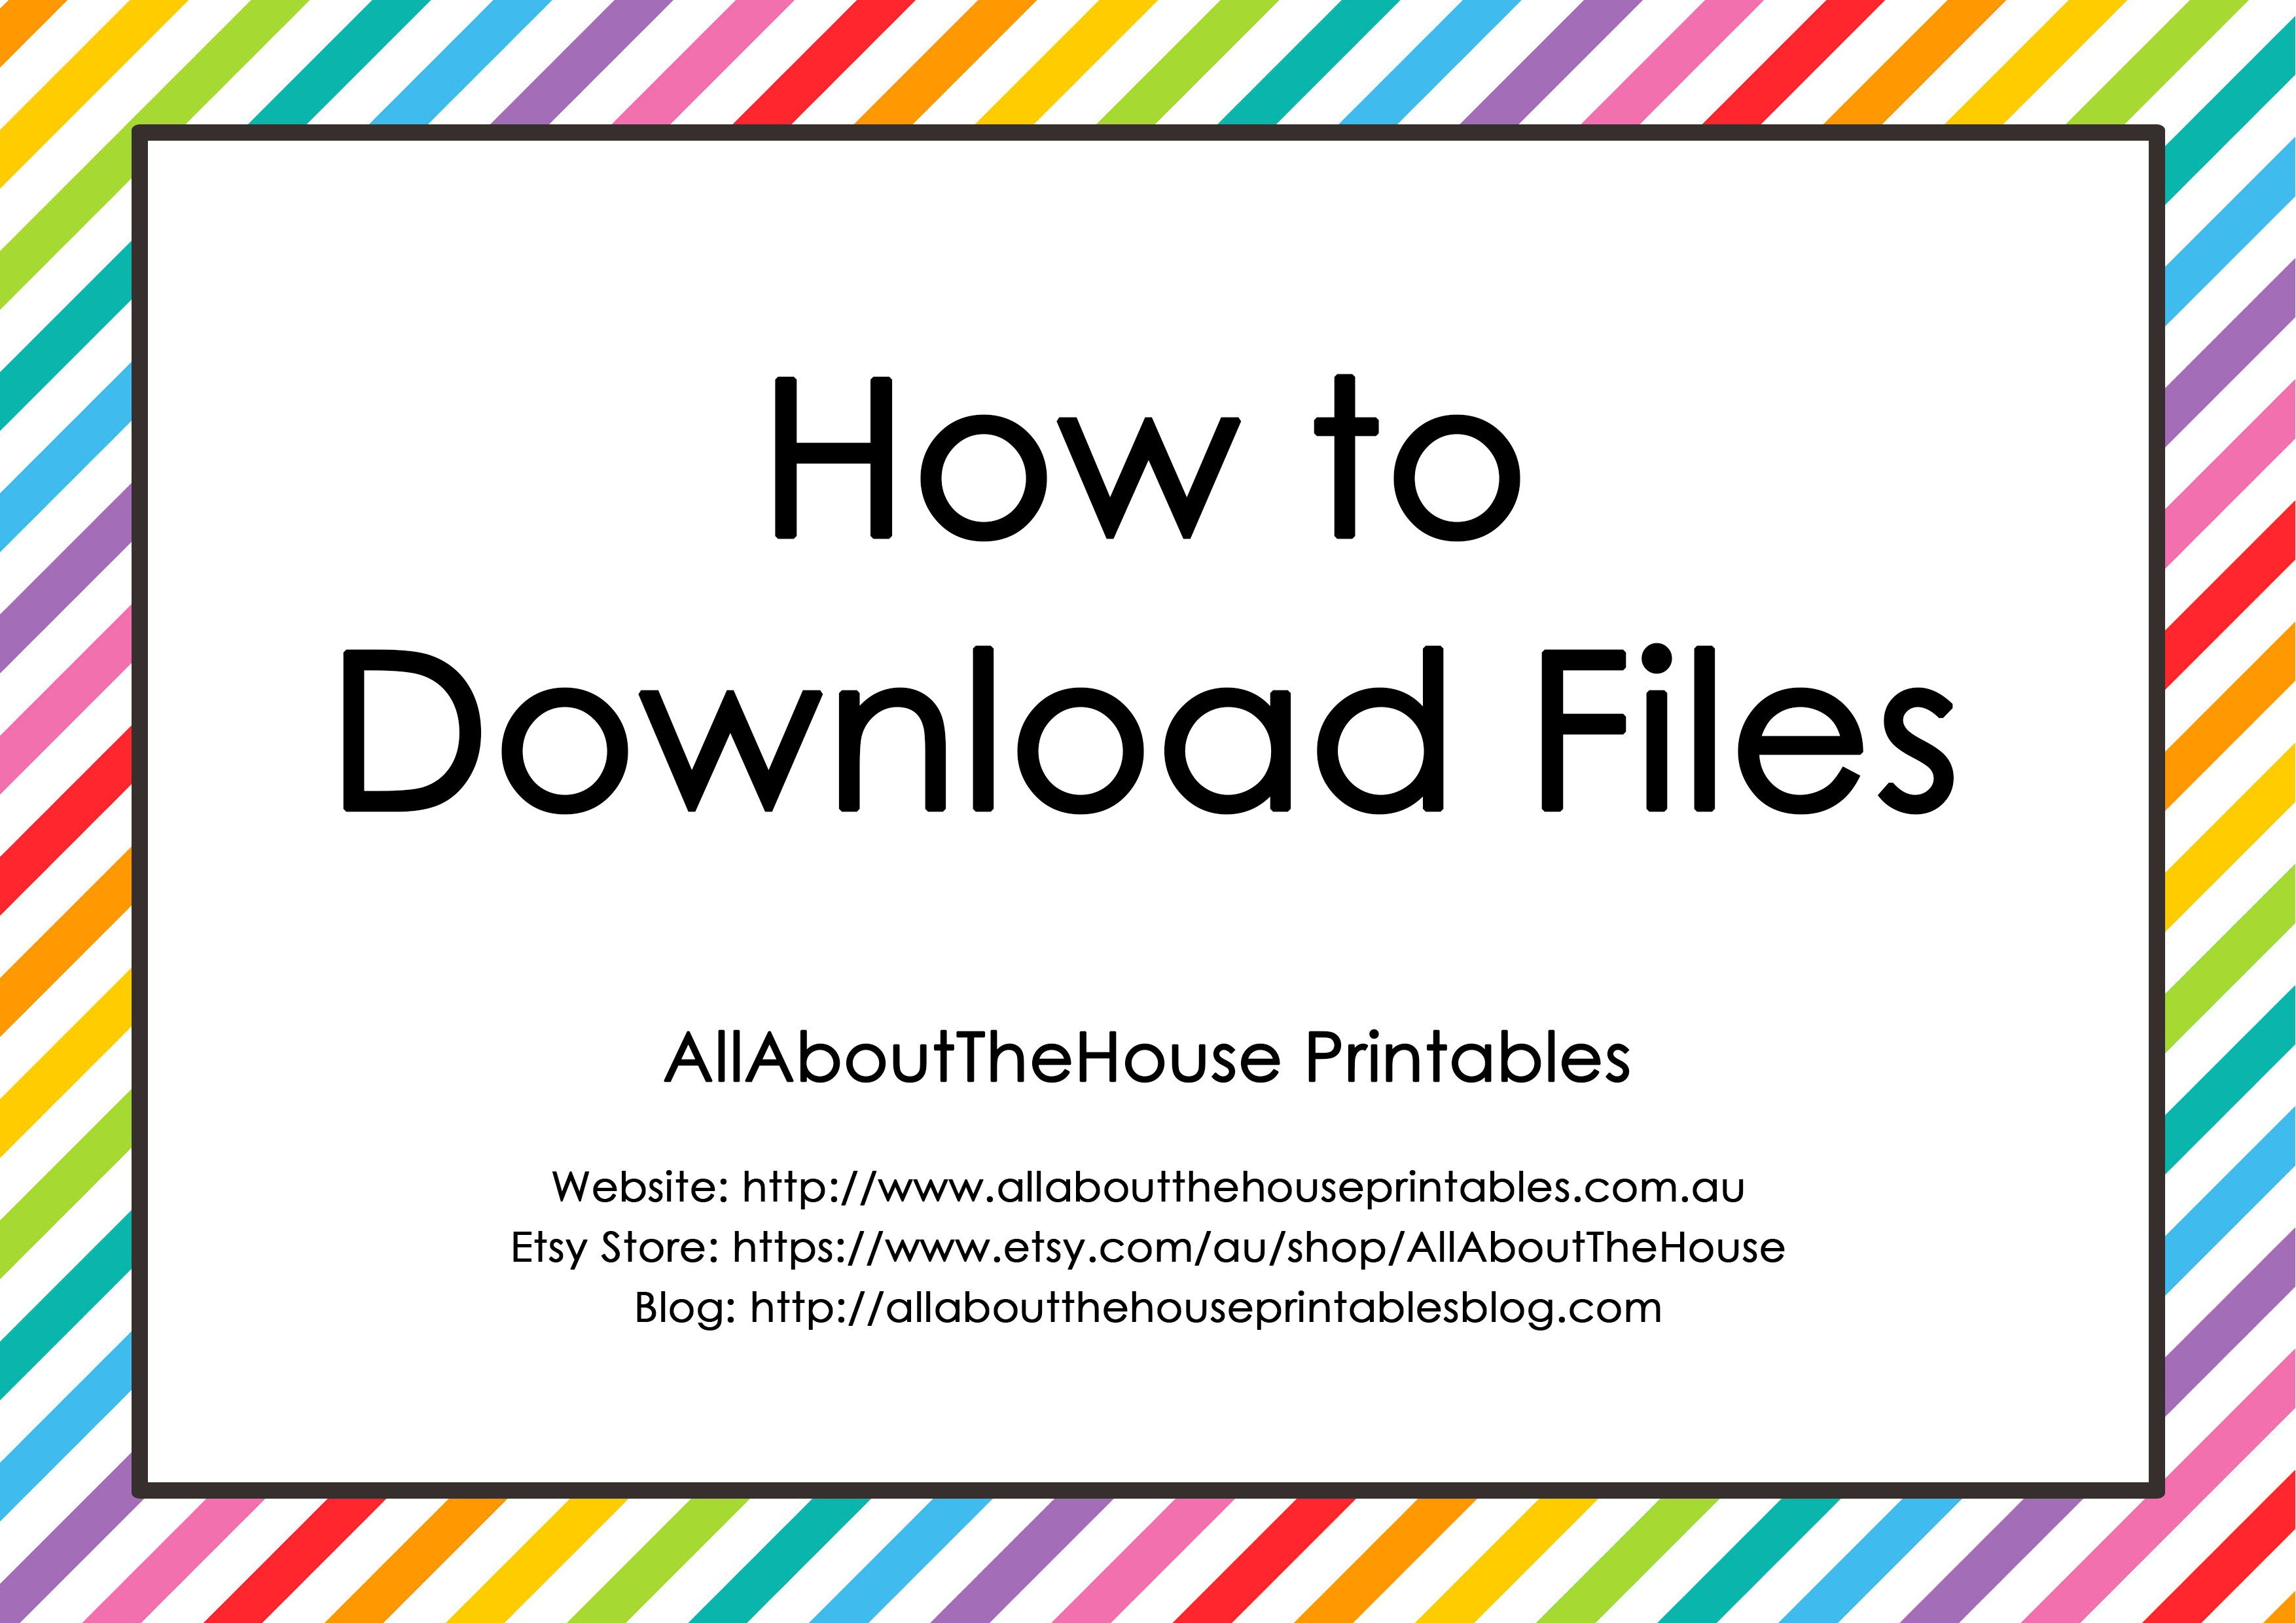 How to Download Files